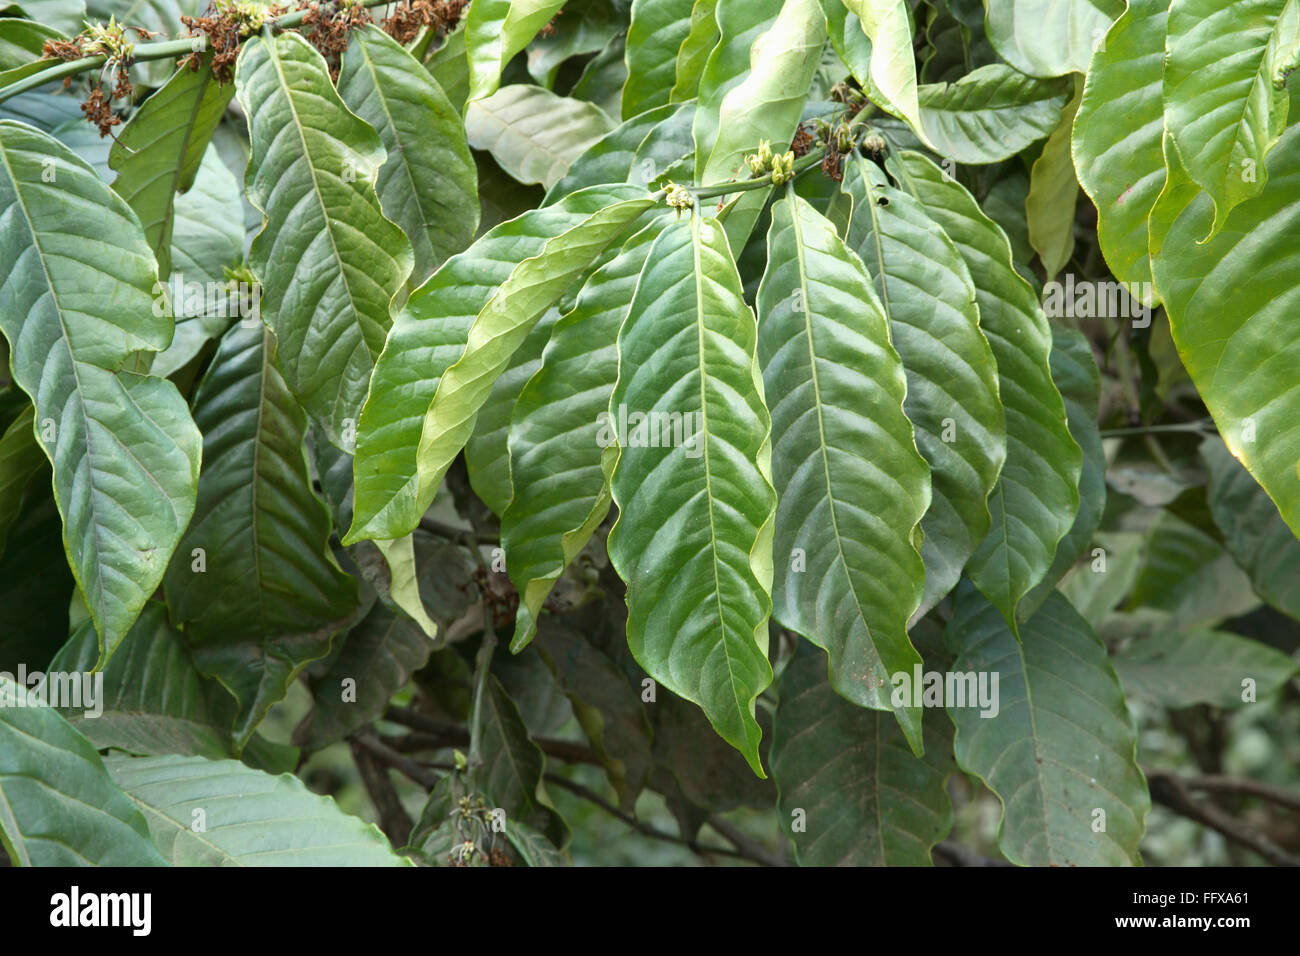 leaves of coffee plant botanical name coffee arabica kerala india stock photo 95850441 alamy. Black Bedroom Furniture Sets. Home Design Ideas